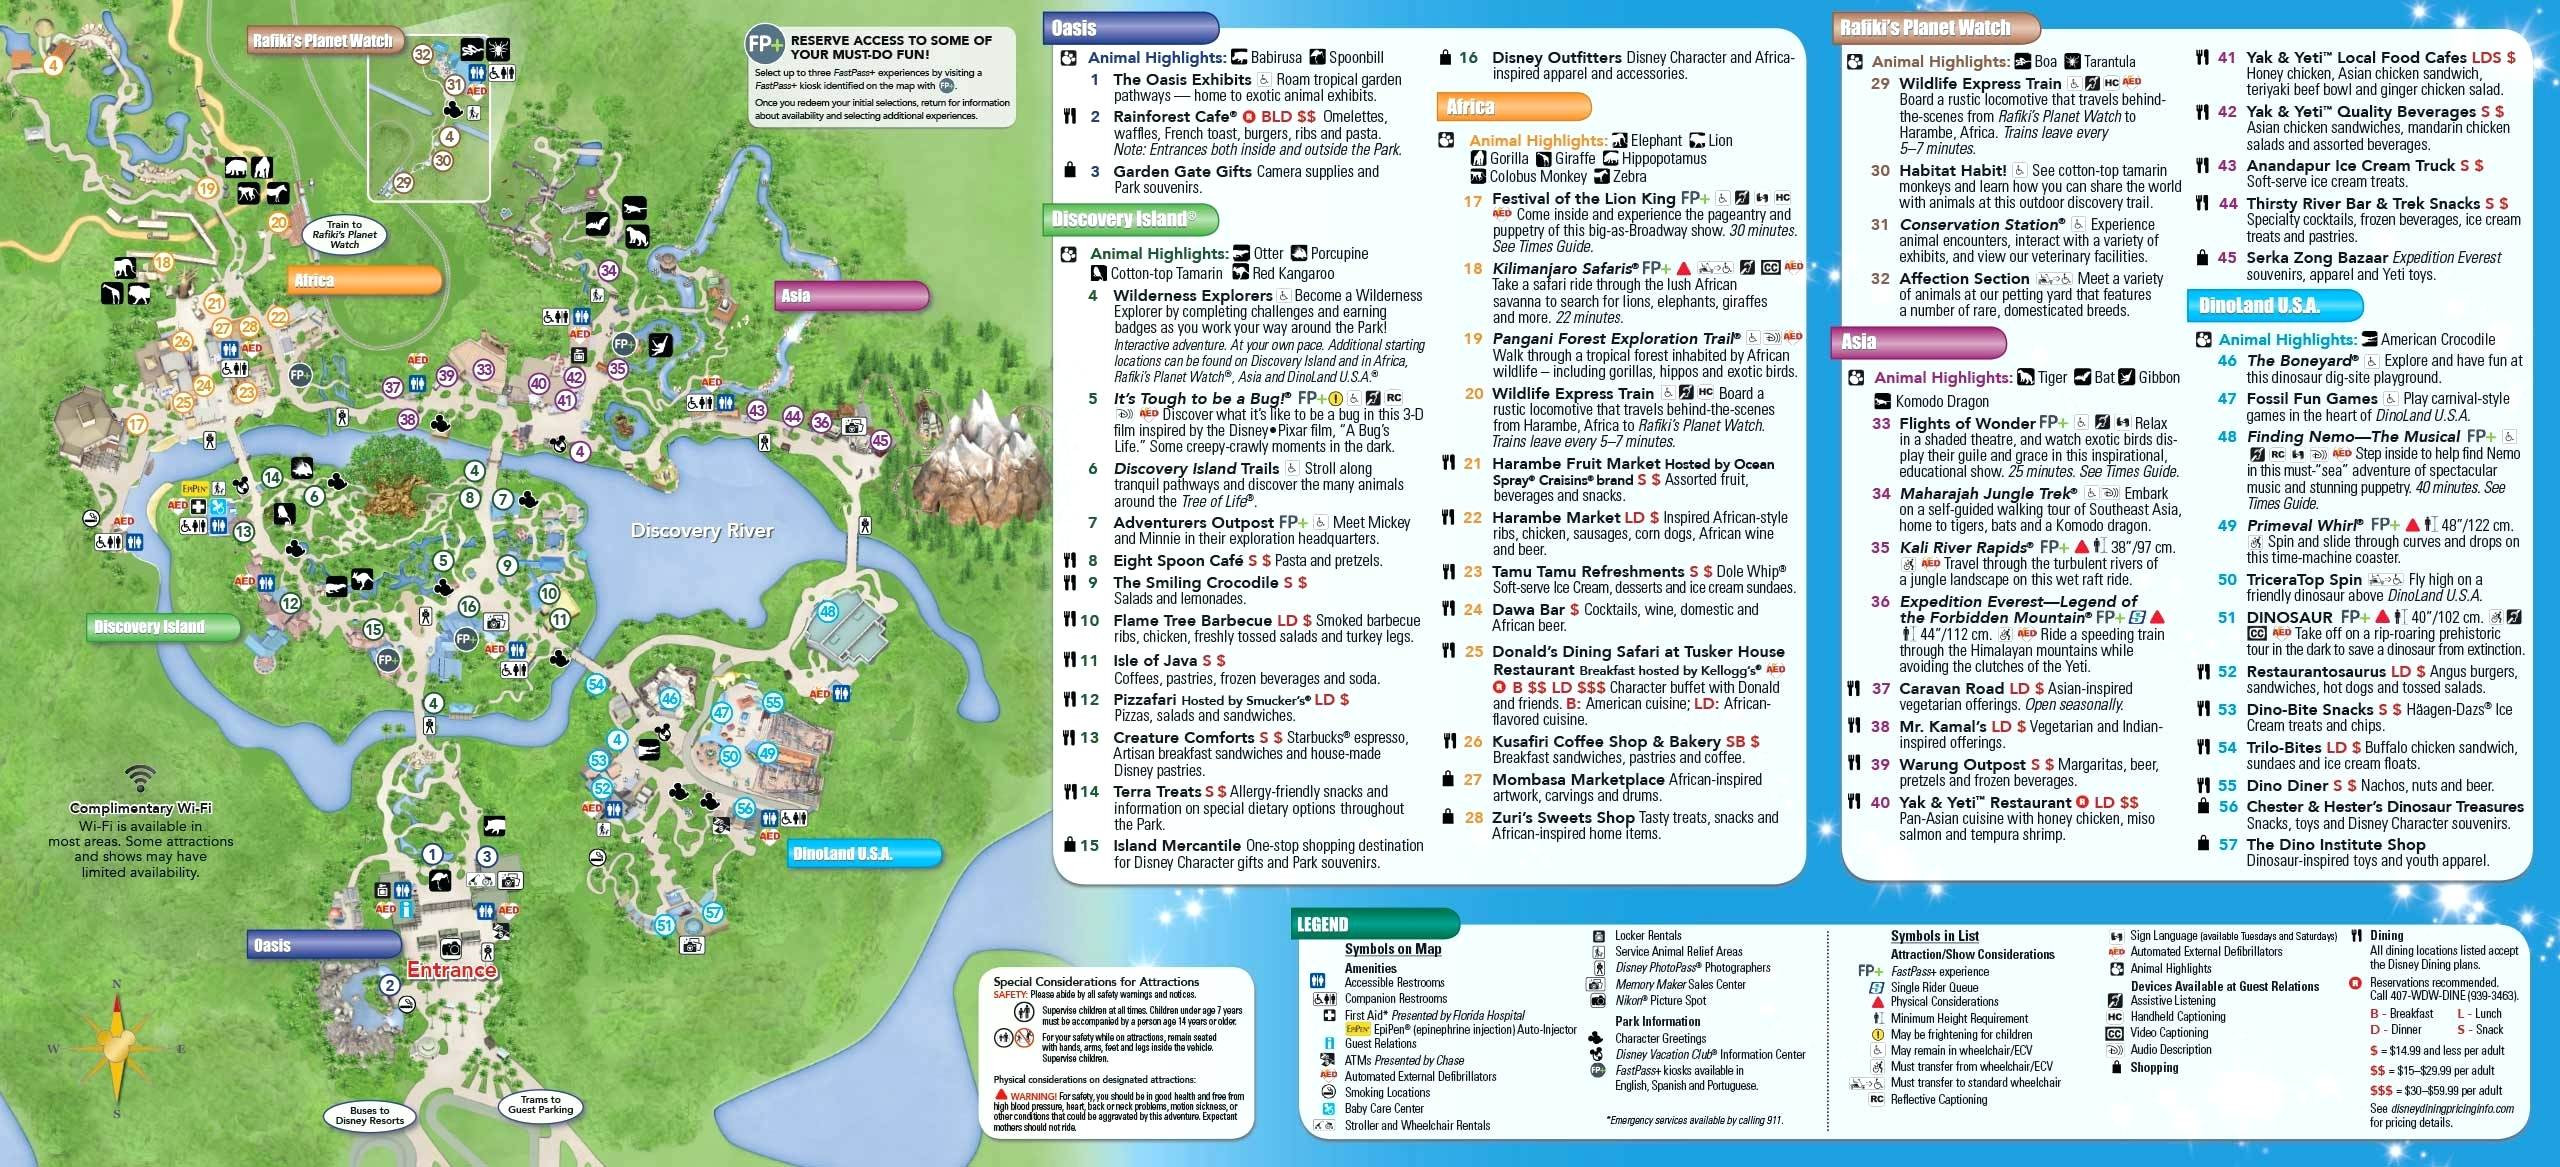 Printable Disney Map 2018 Inspirational Printable Map Disney World Me Best Maps